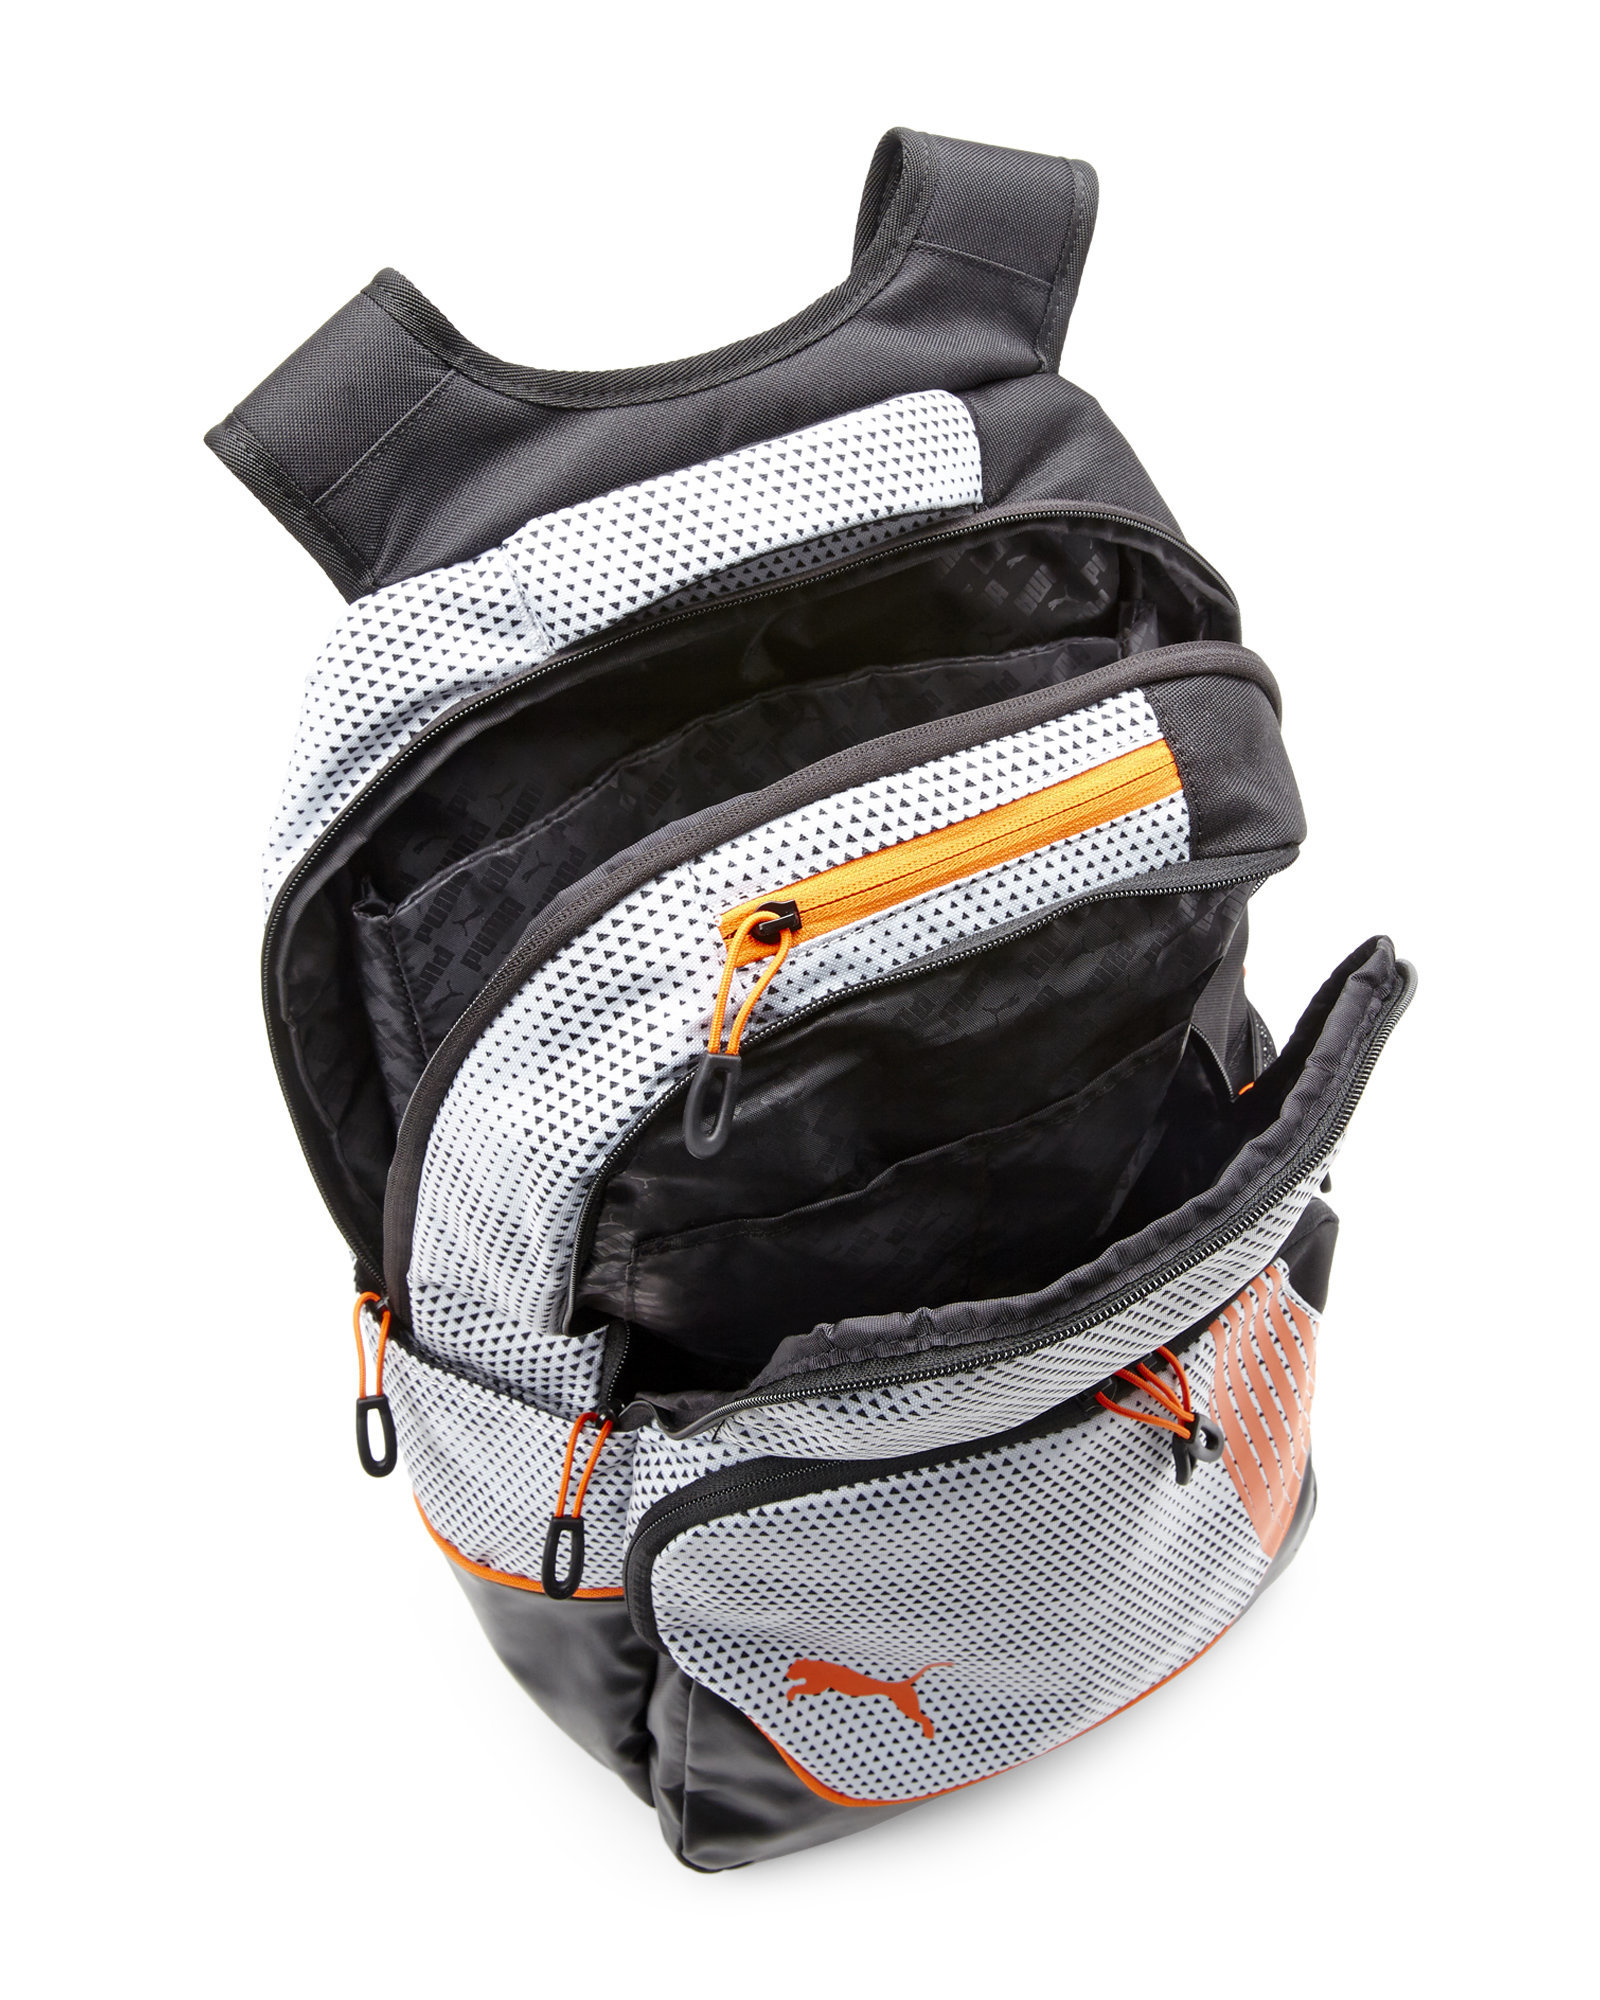 82f9c80e1bb0 Lyst - PUMA Black   Orange Raptide Backpack in Metallic for Men